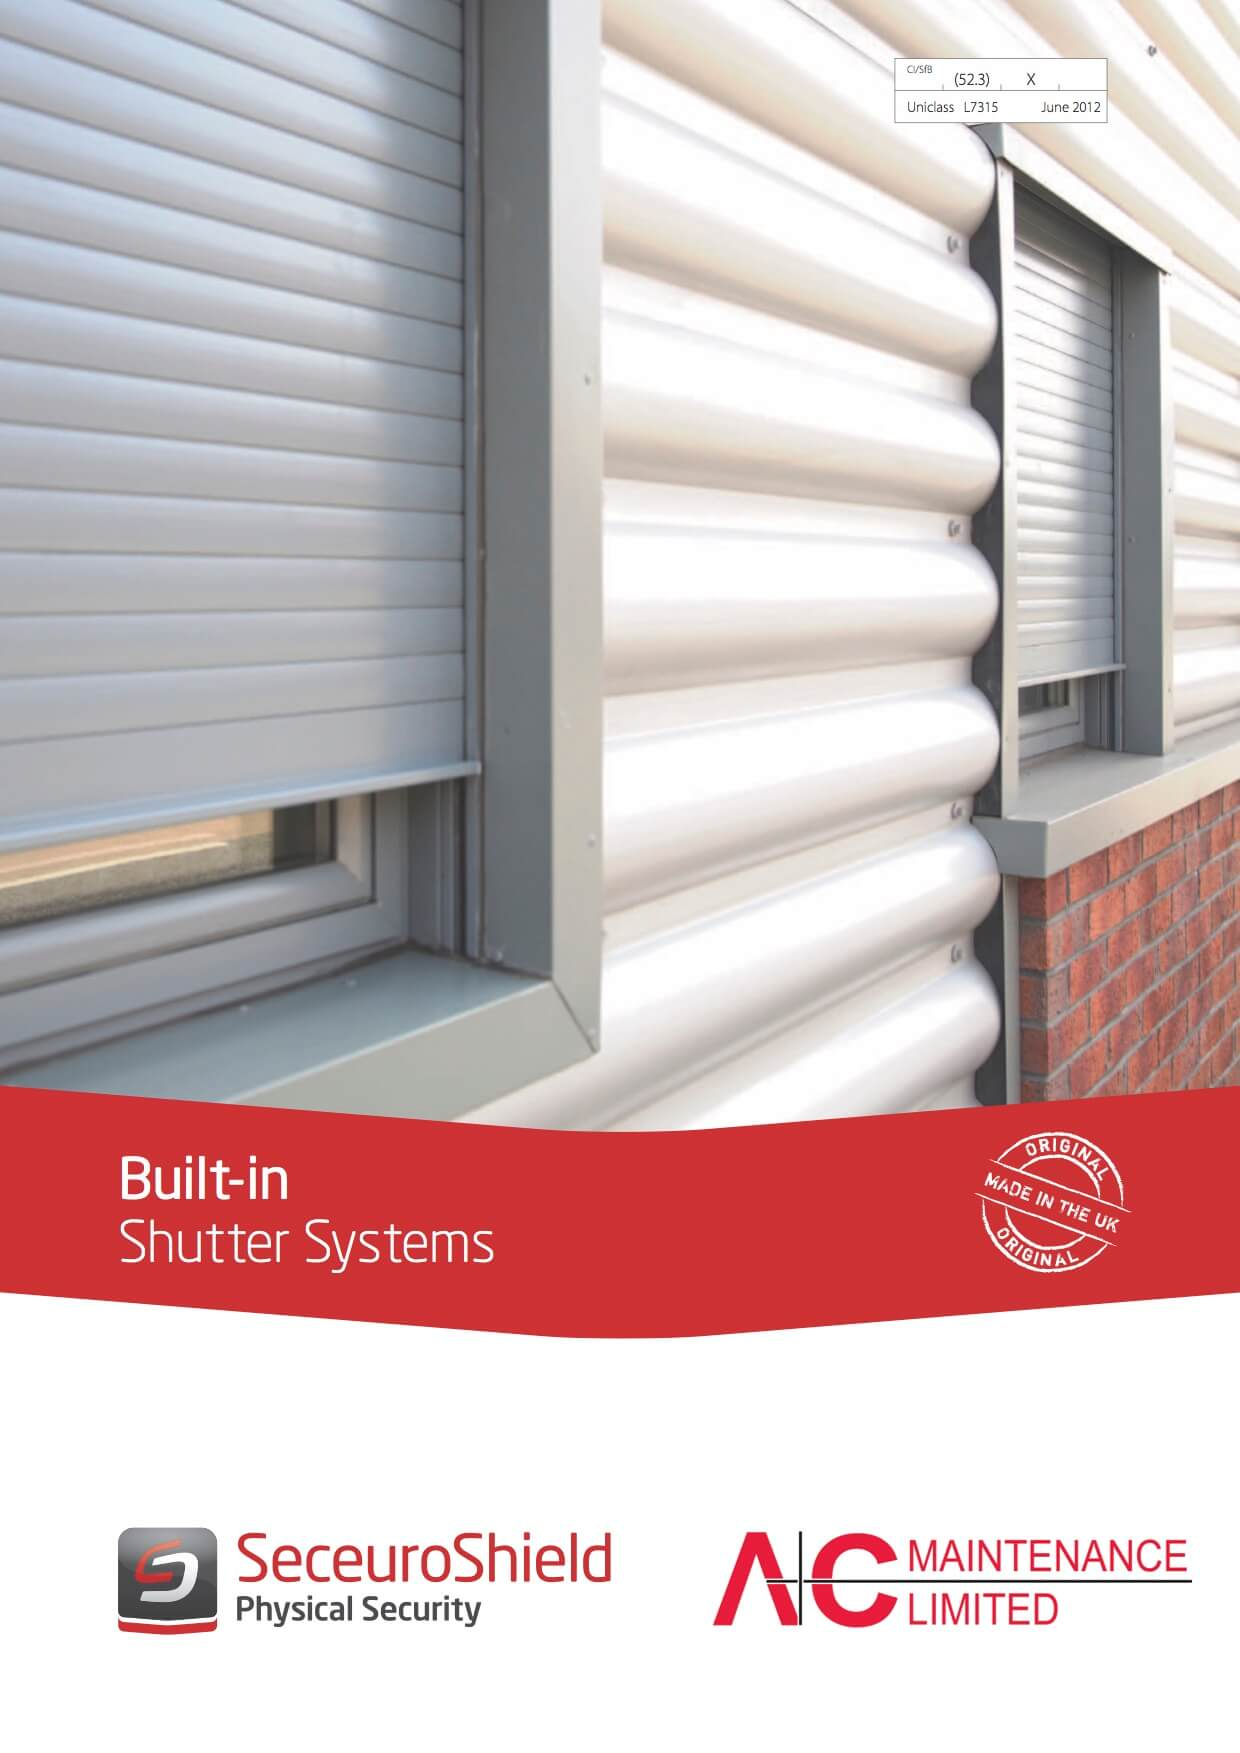 http://www.aandcmaintenance.co.uk/wp-content/uploads/Built-in-shutters-brochure.jpg